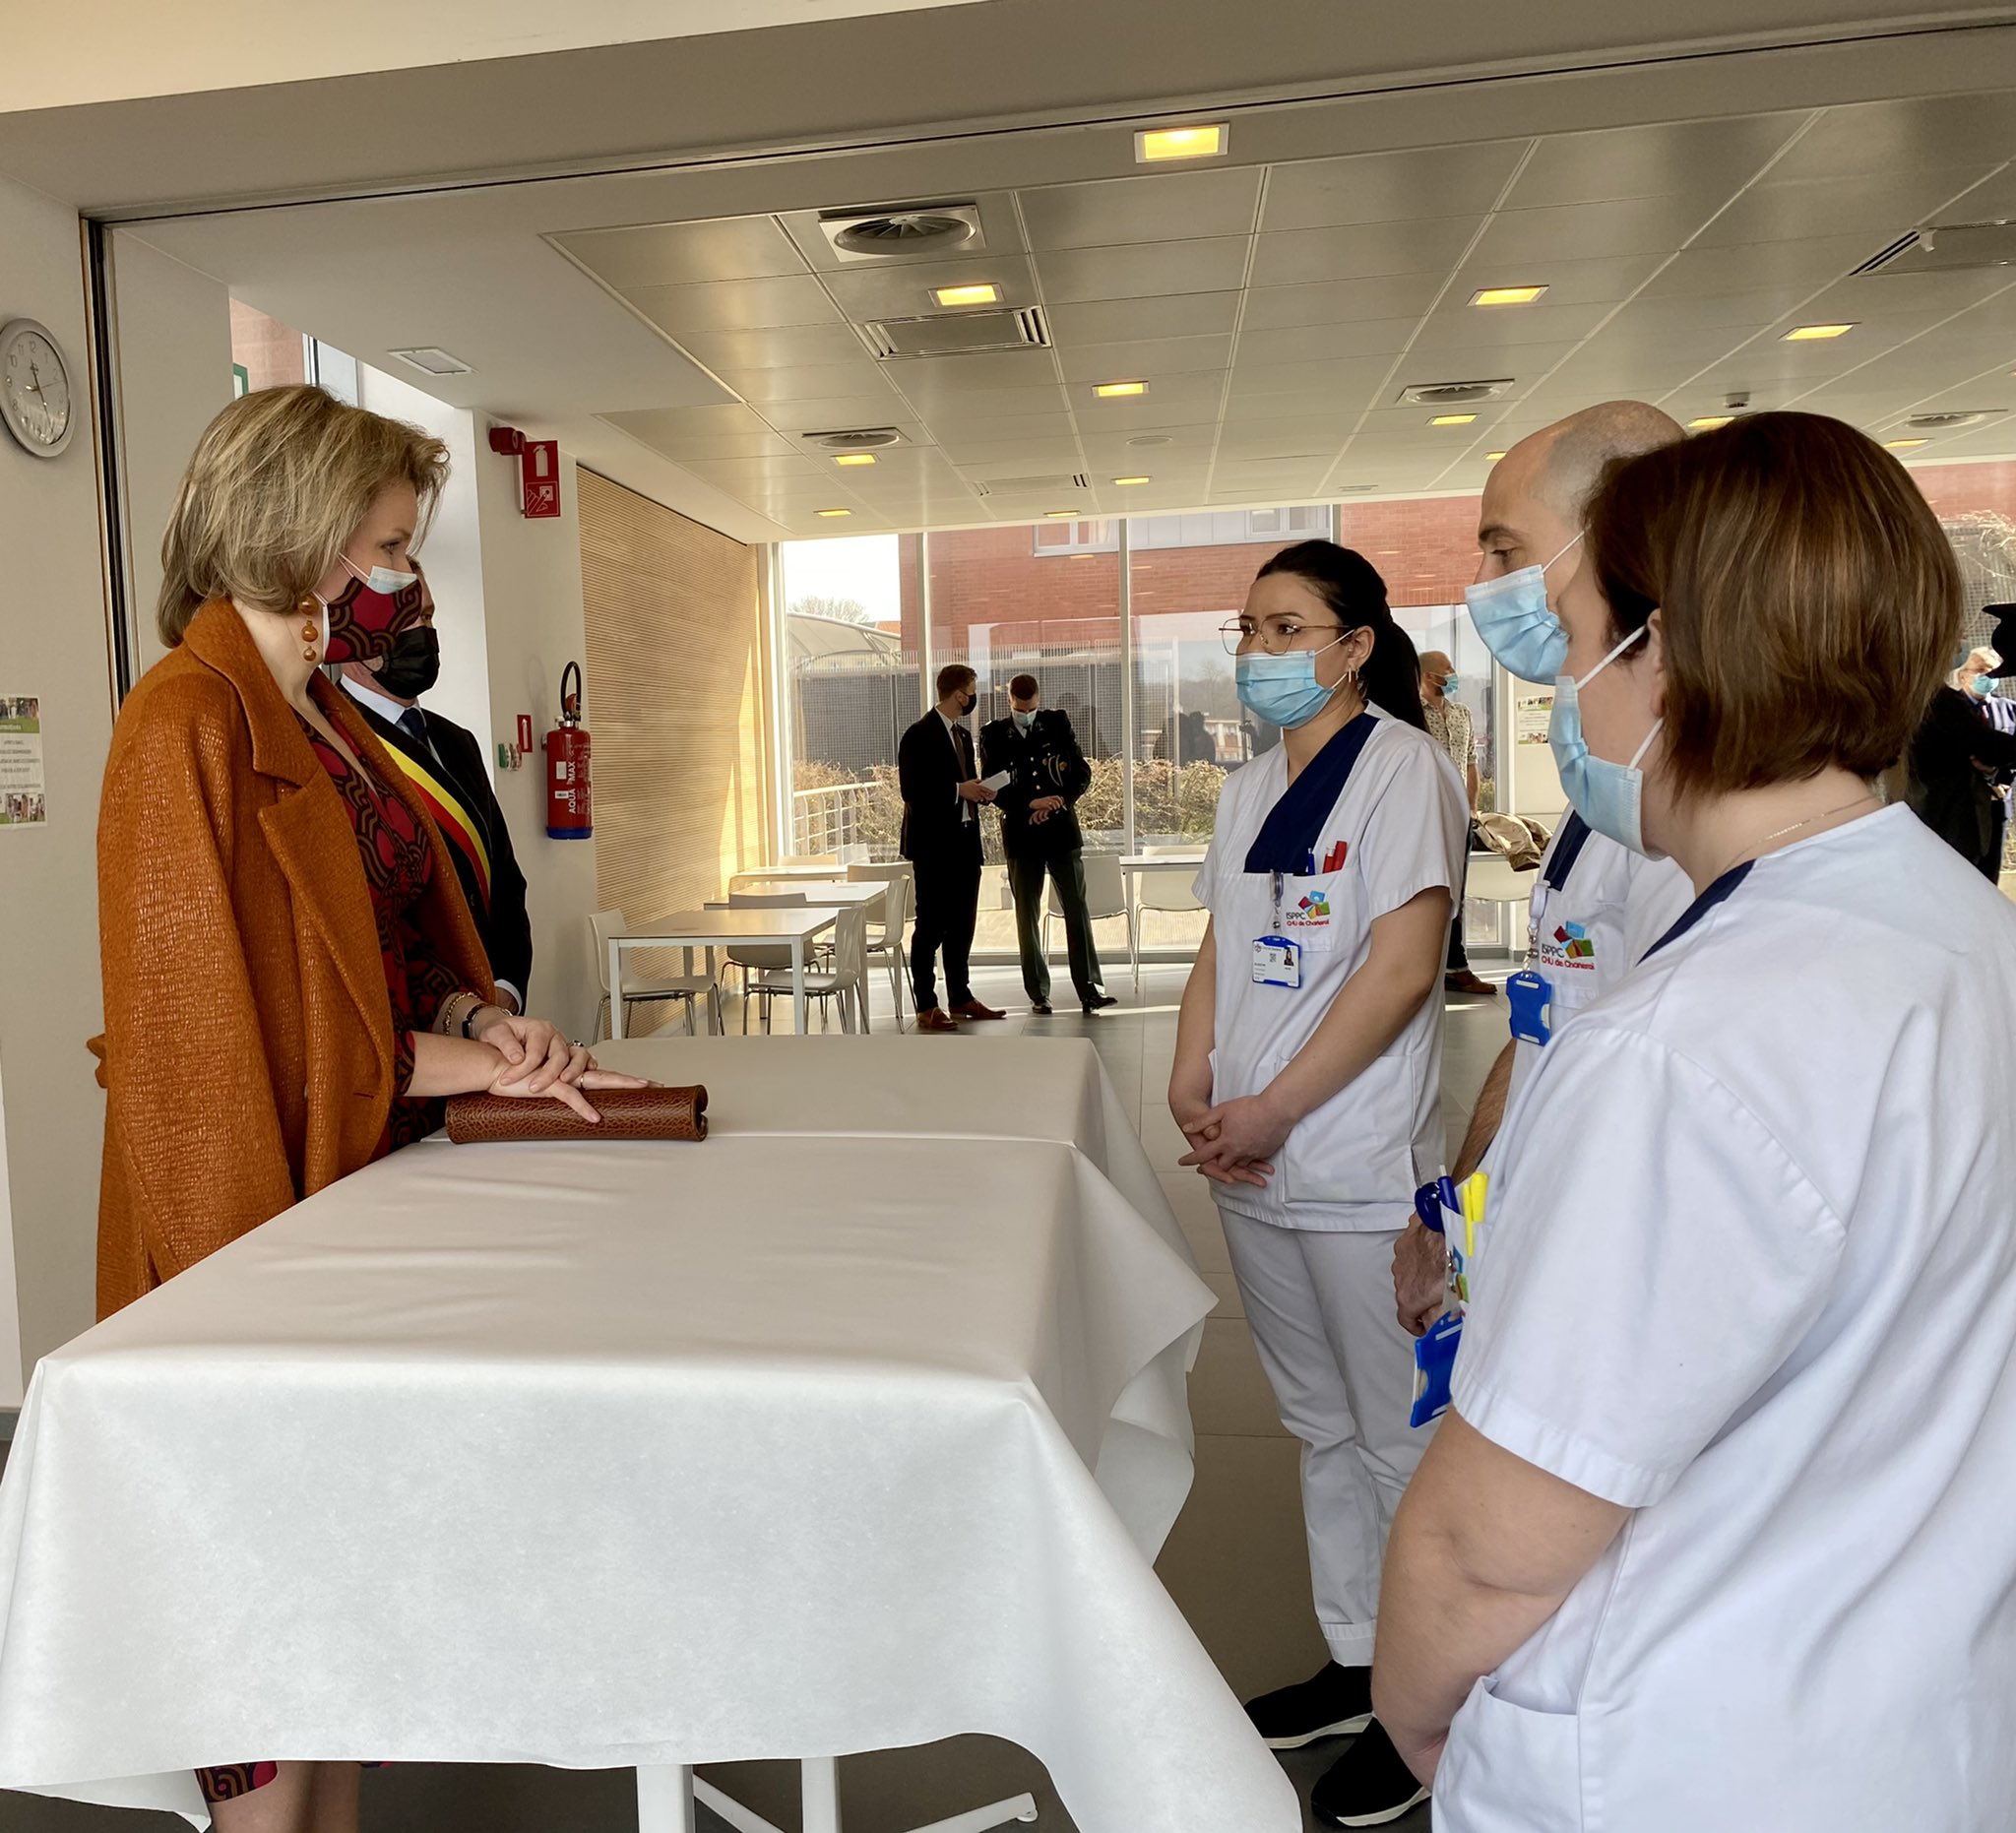 King Philippe and Queen Mathilde of Belgian visited the Marie Curie Hospital